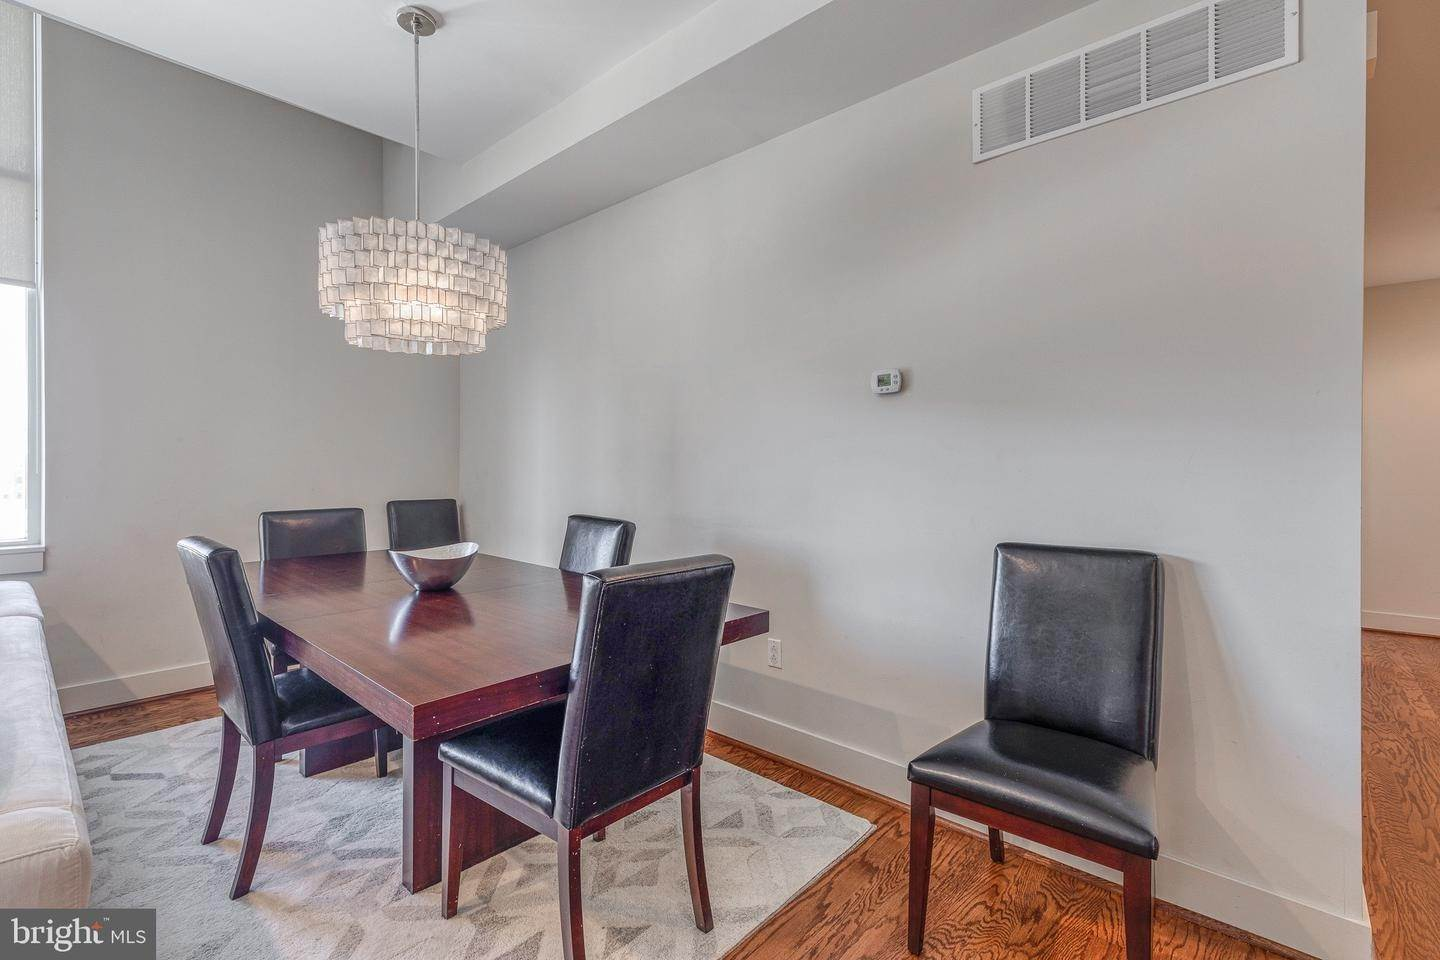 7. Apartments for Sale at 23 S 23RD ST #5B Philadelphia, Pennsylvania 19103 United States